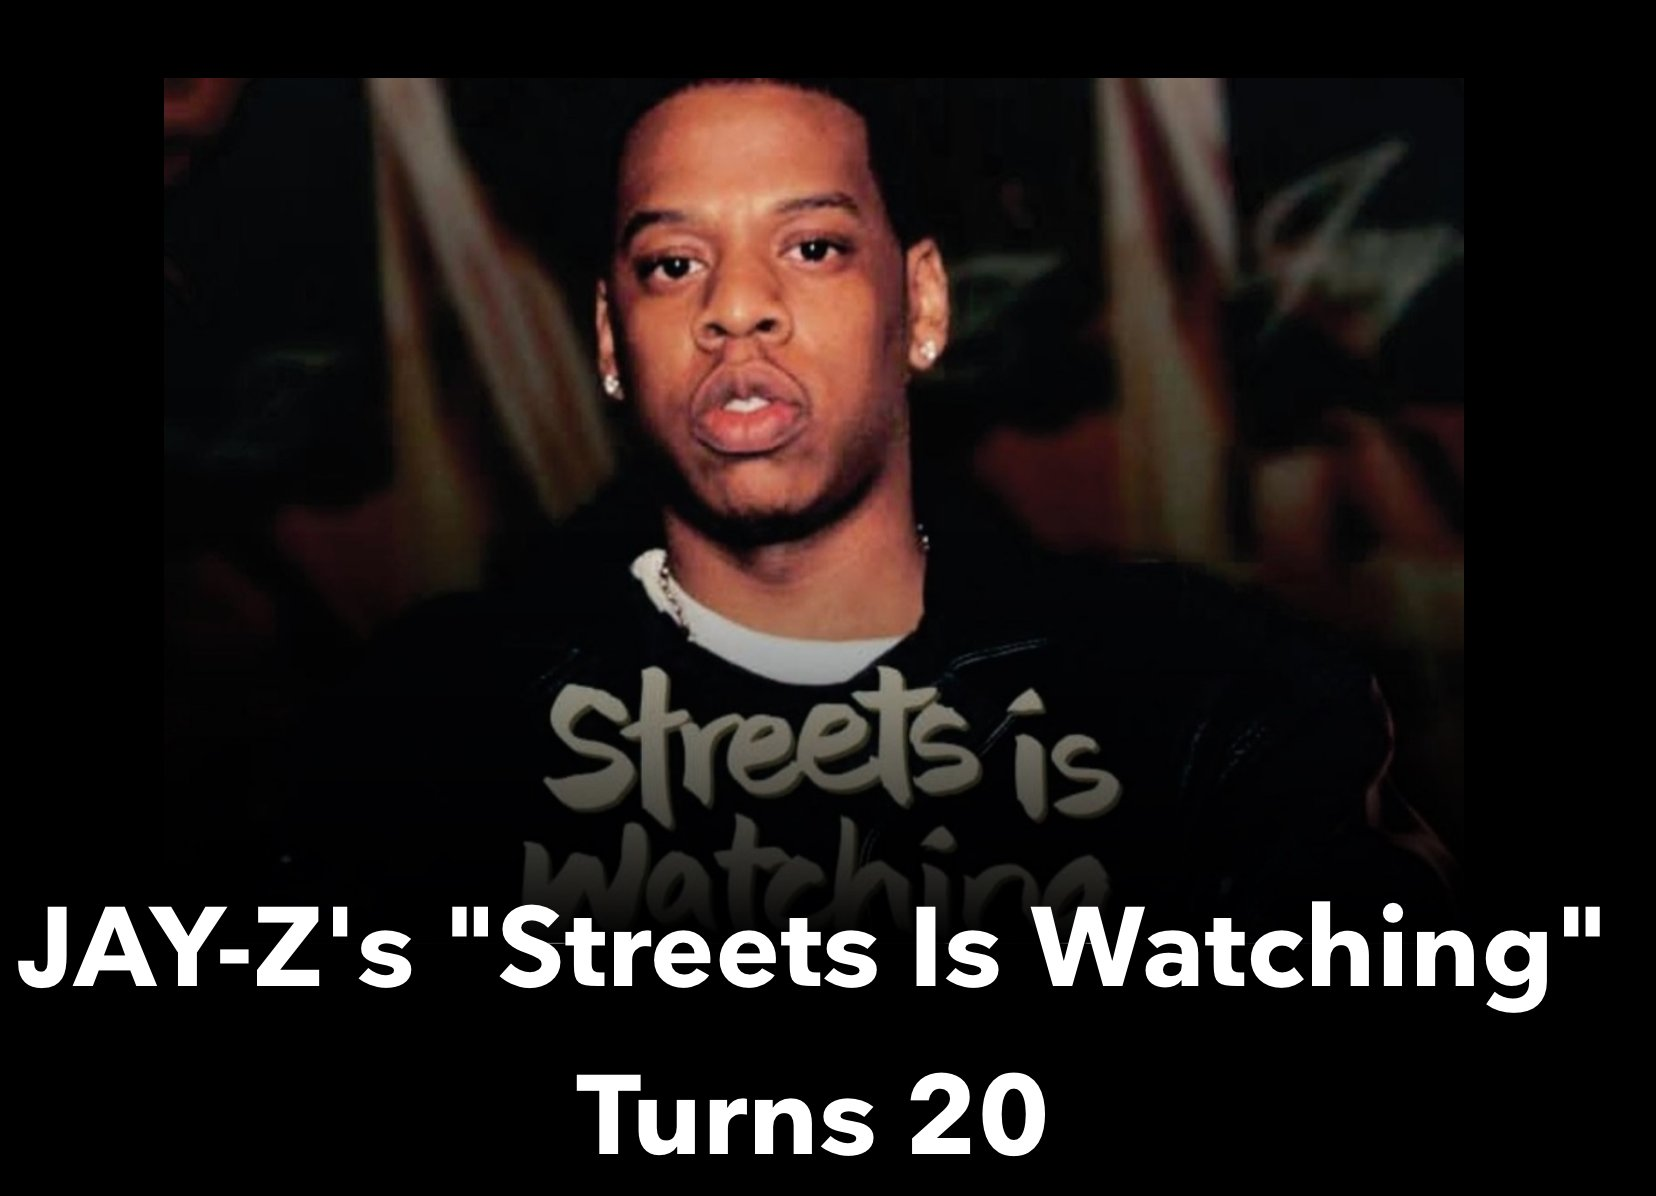 Watch! #StreetsIsWatching https://t.co/n9rGK6wQr9 #TIDAL https://t.co/LvuiY9jWyw